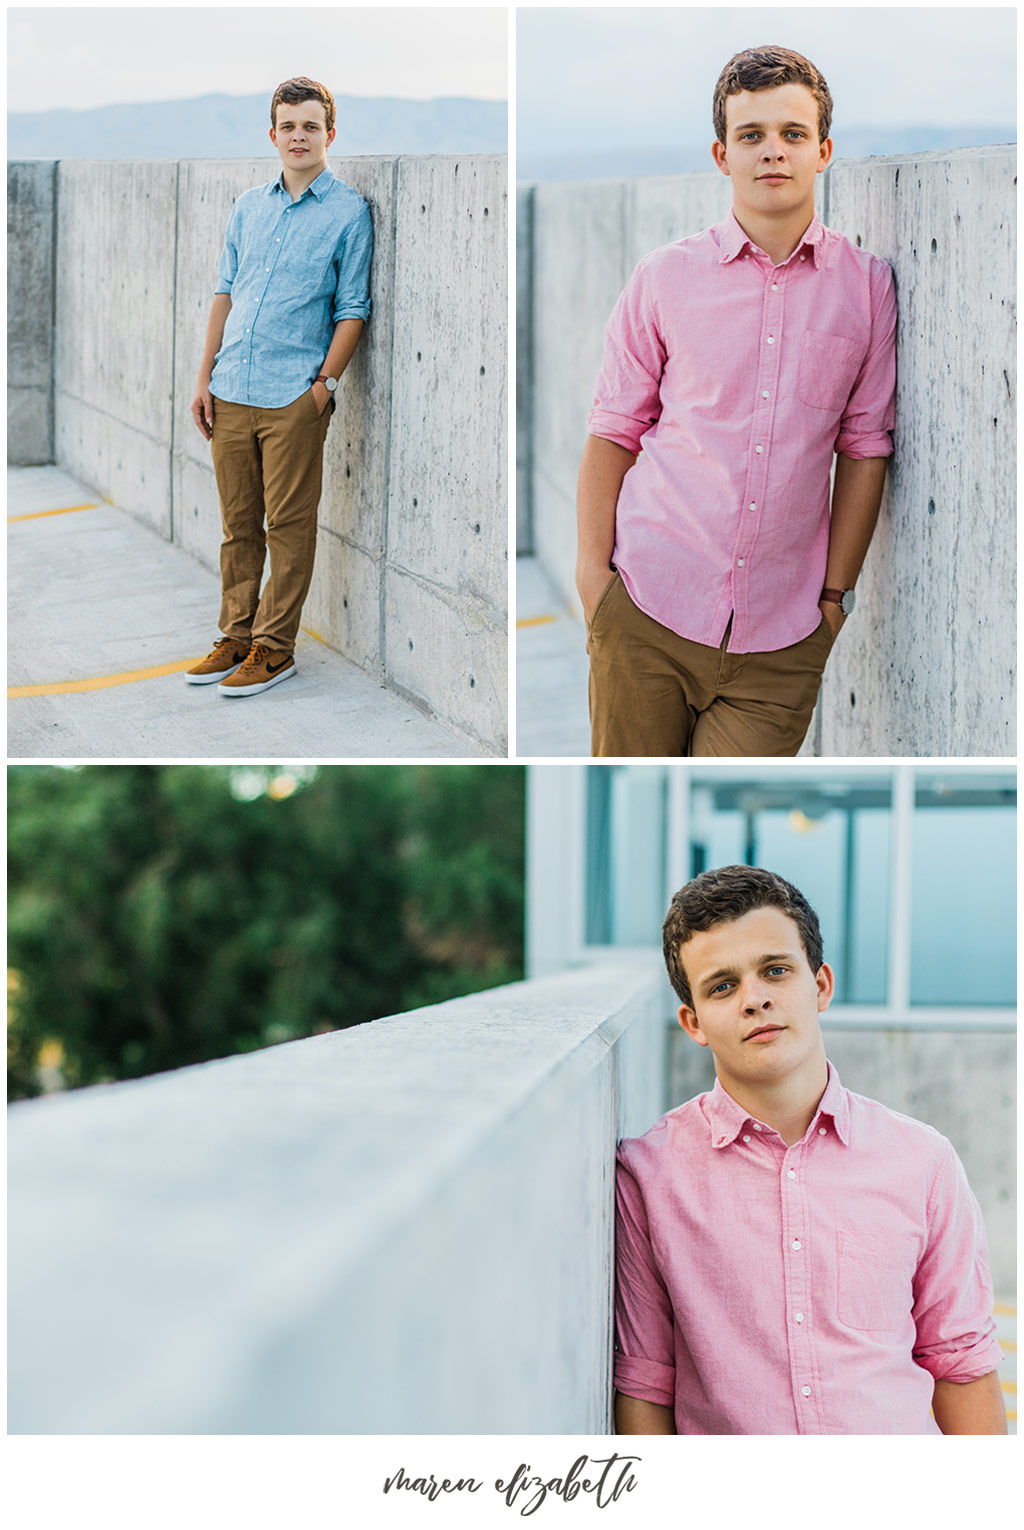 UVU boy senior pictures by Maren Elizabeth Photography taken on the top level of the Utah Valley University parking garage. | Arizona Senior Photographer